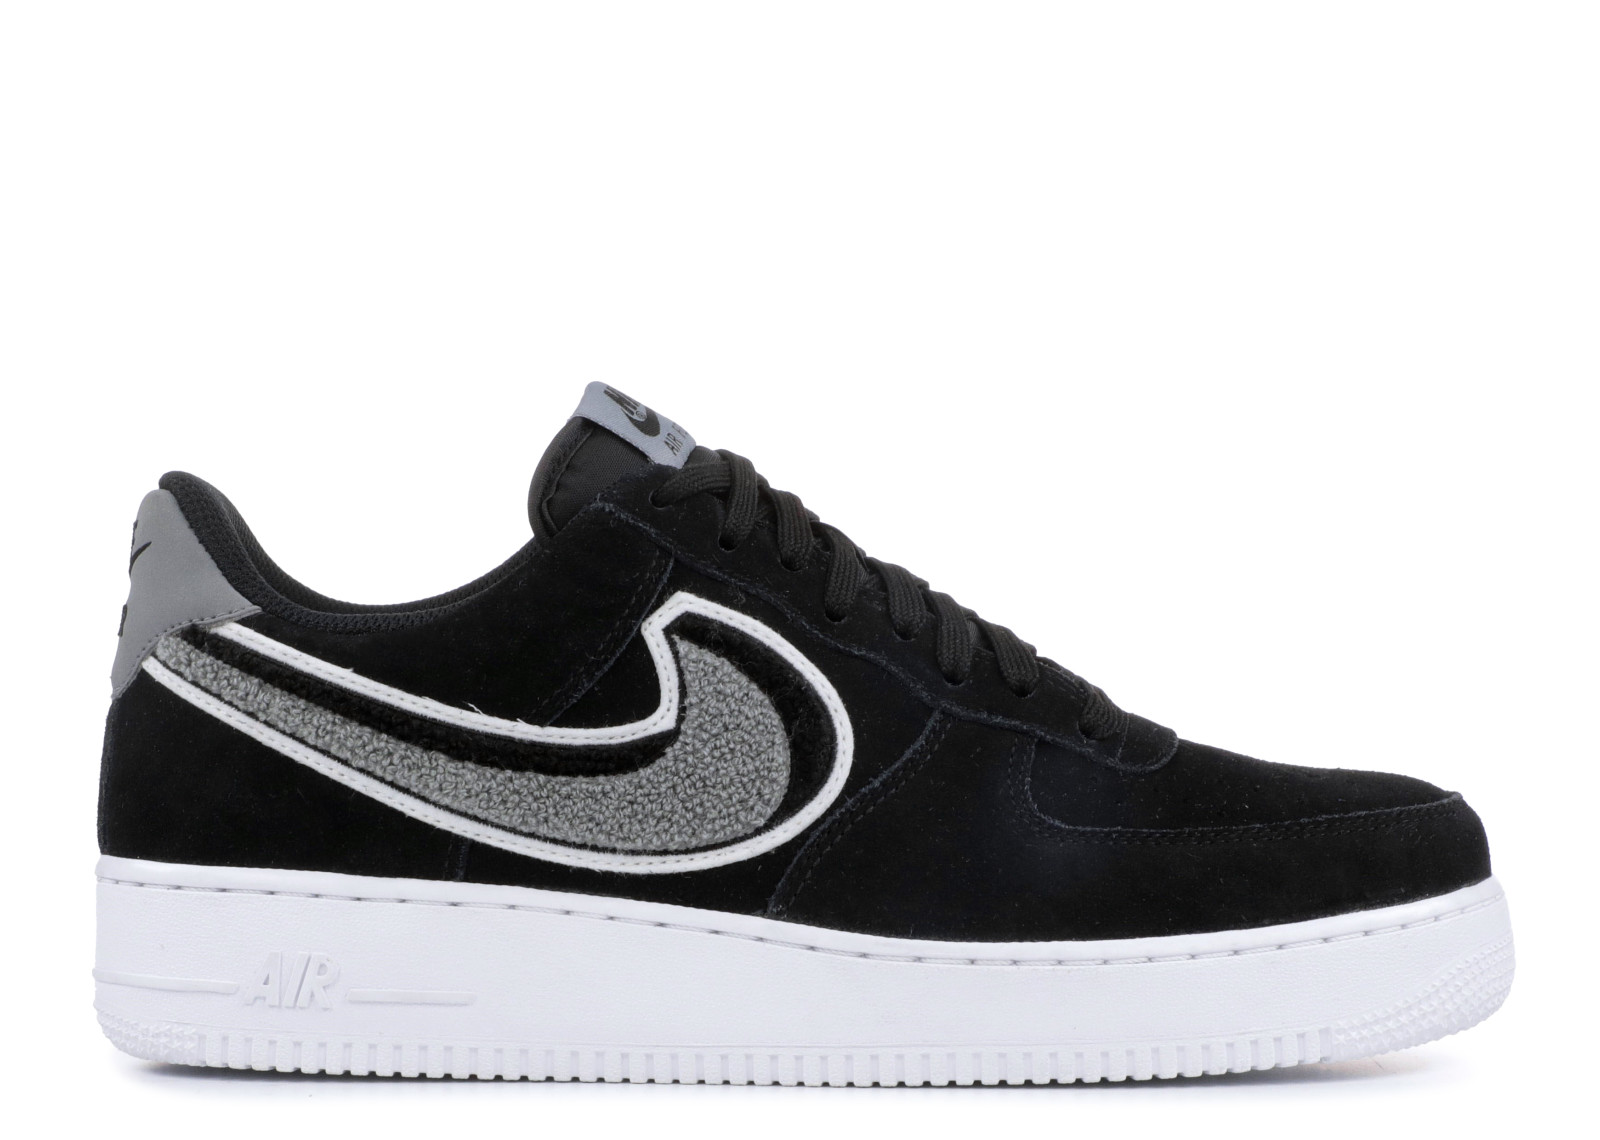 newest 616d0 48a14 Prev Air Force 1 07 Lv8 Chenille Swoosh Black Grey ...